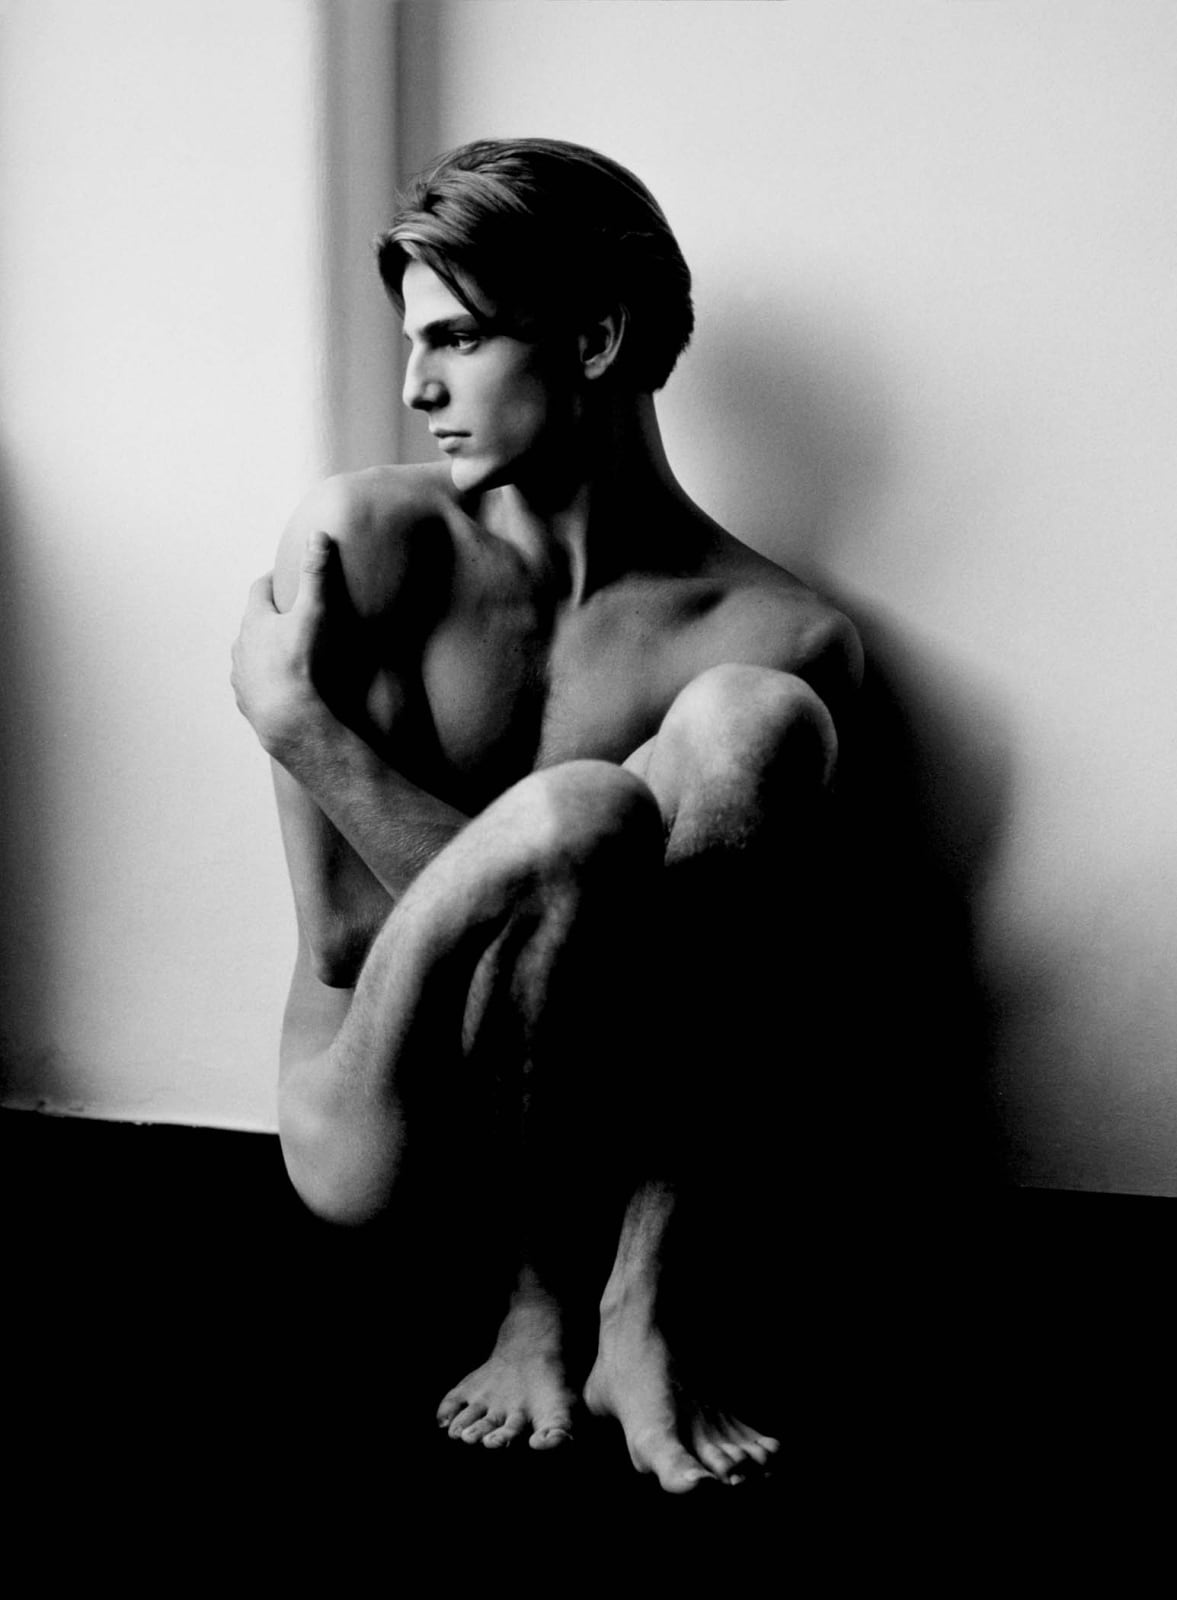 Herb Ritts photograph of male model Stephano, nude, seated, in Milan